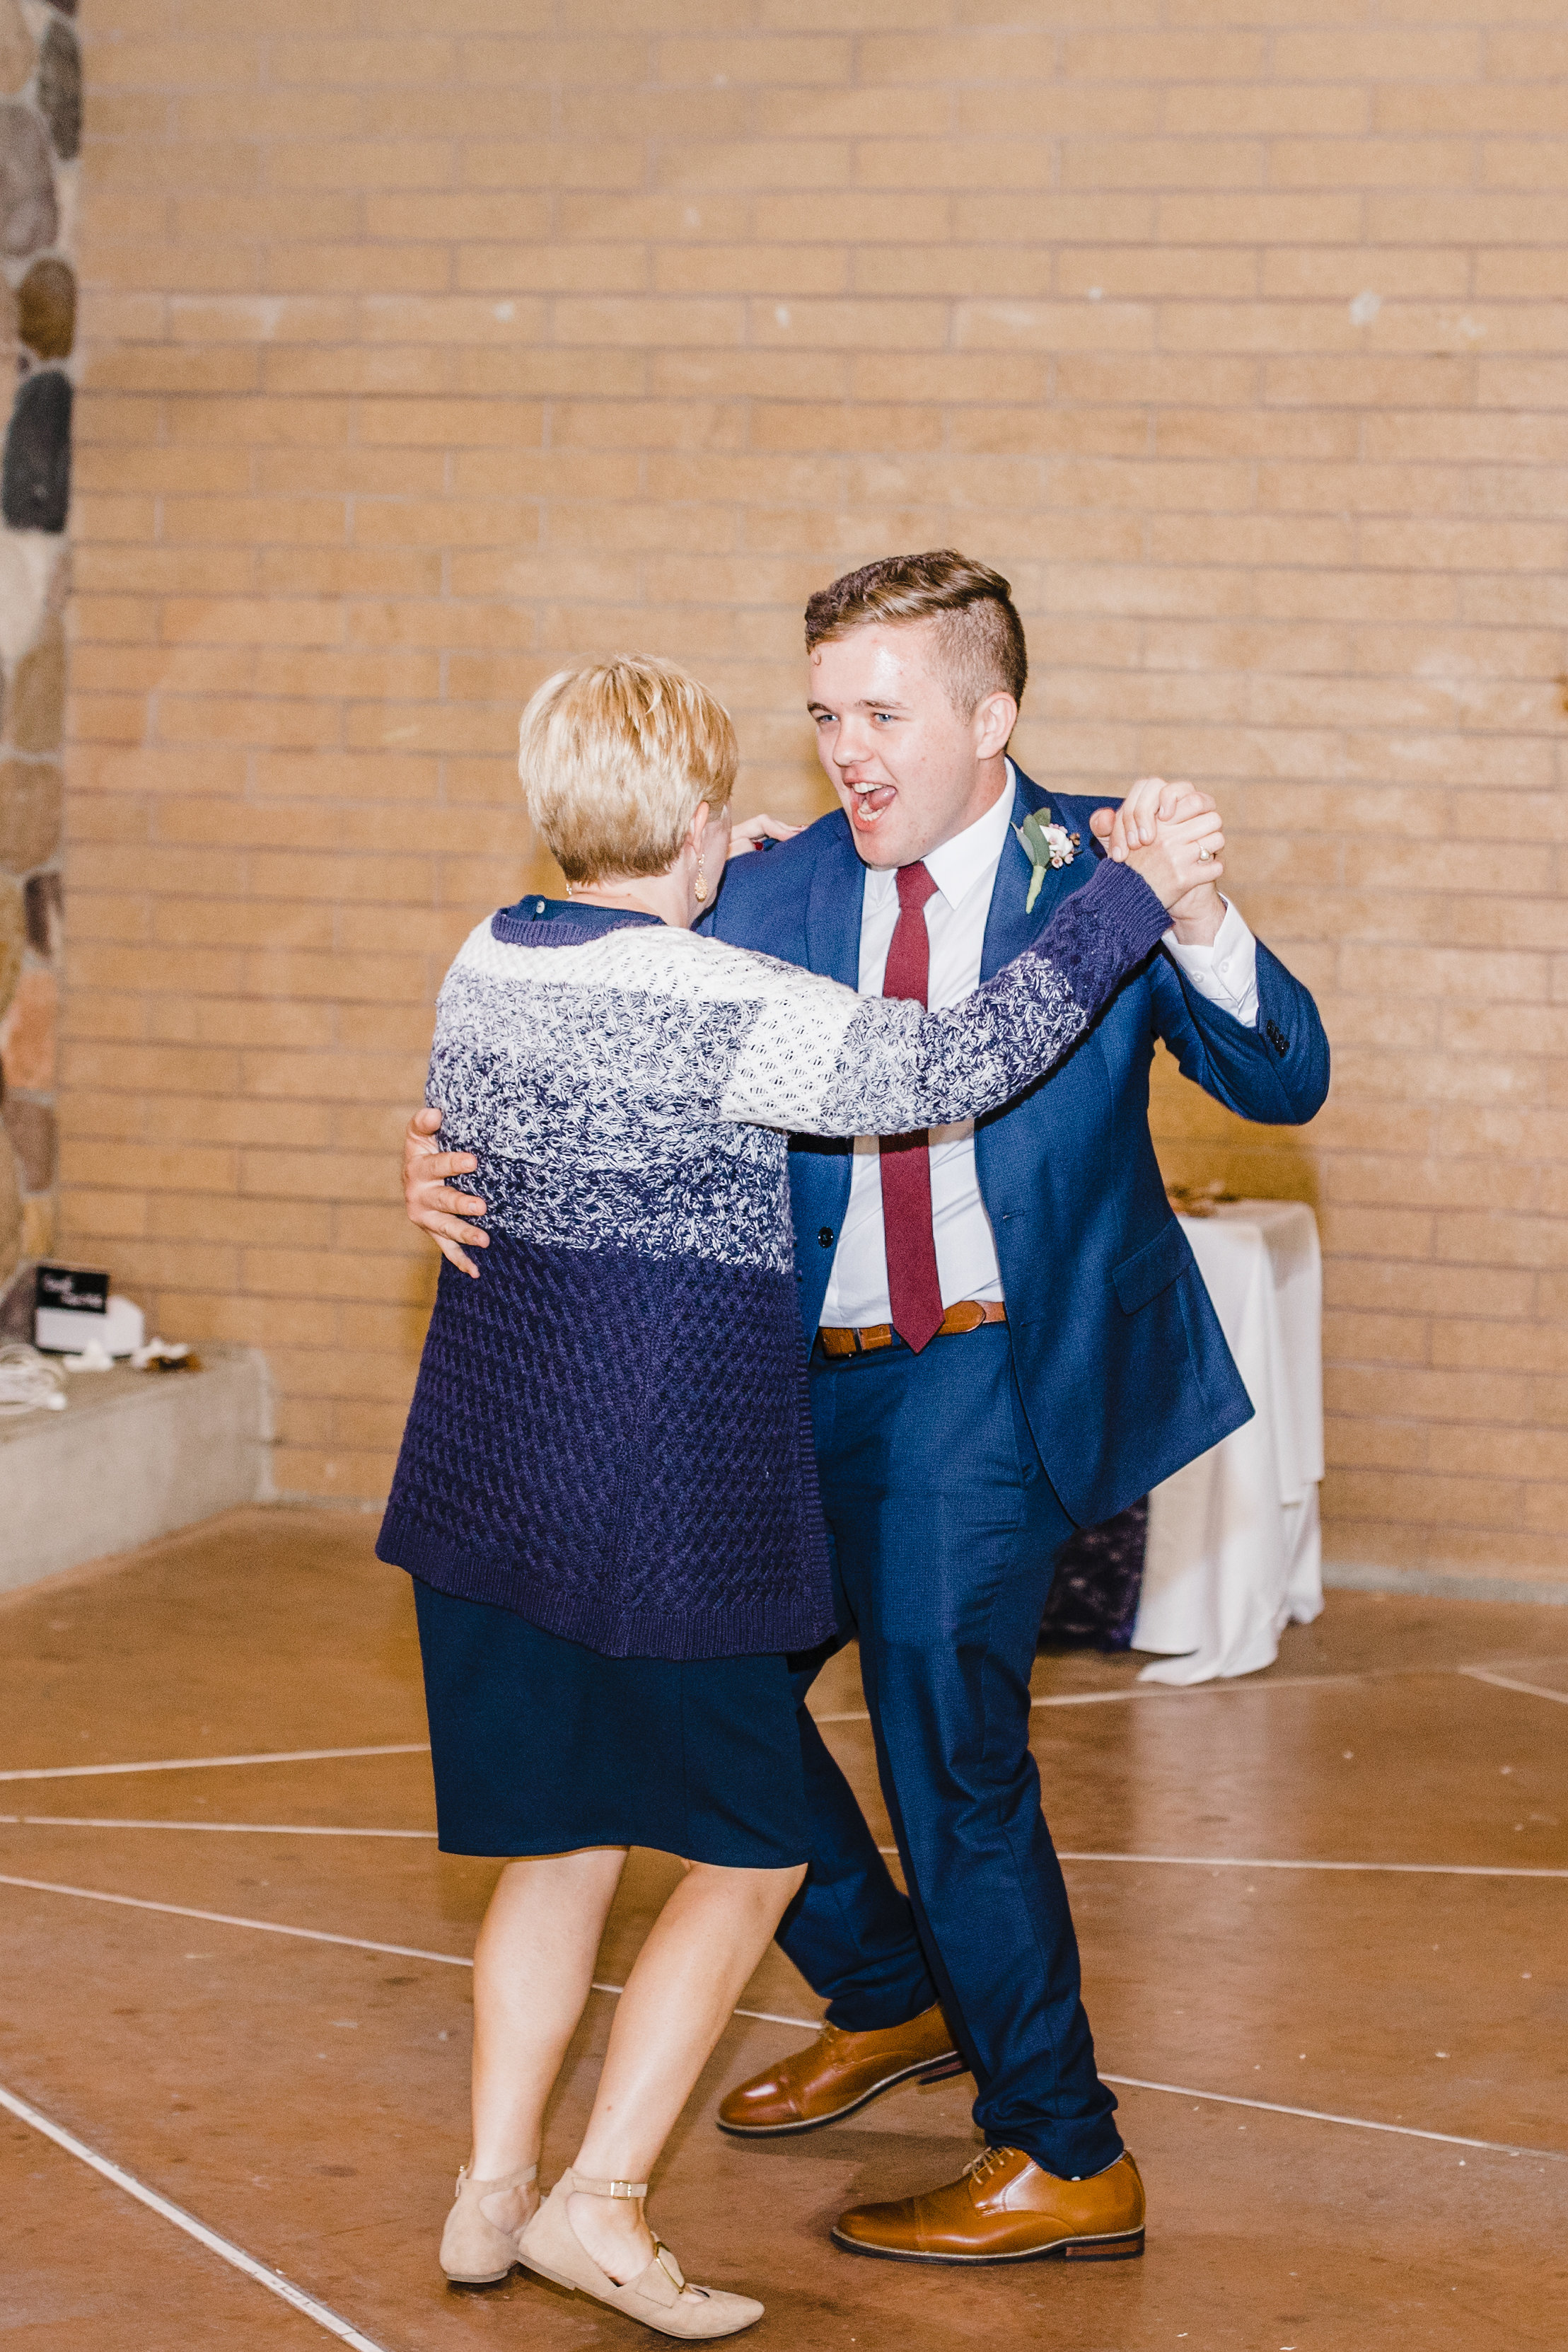 mother and son dance wedding reception fun dancing son crazy dancing with his mother on his wedding day